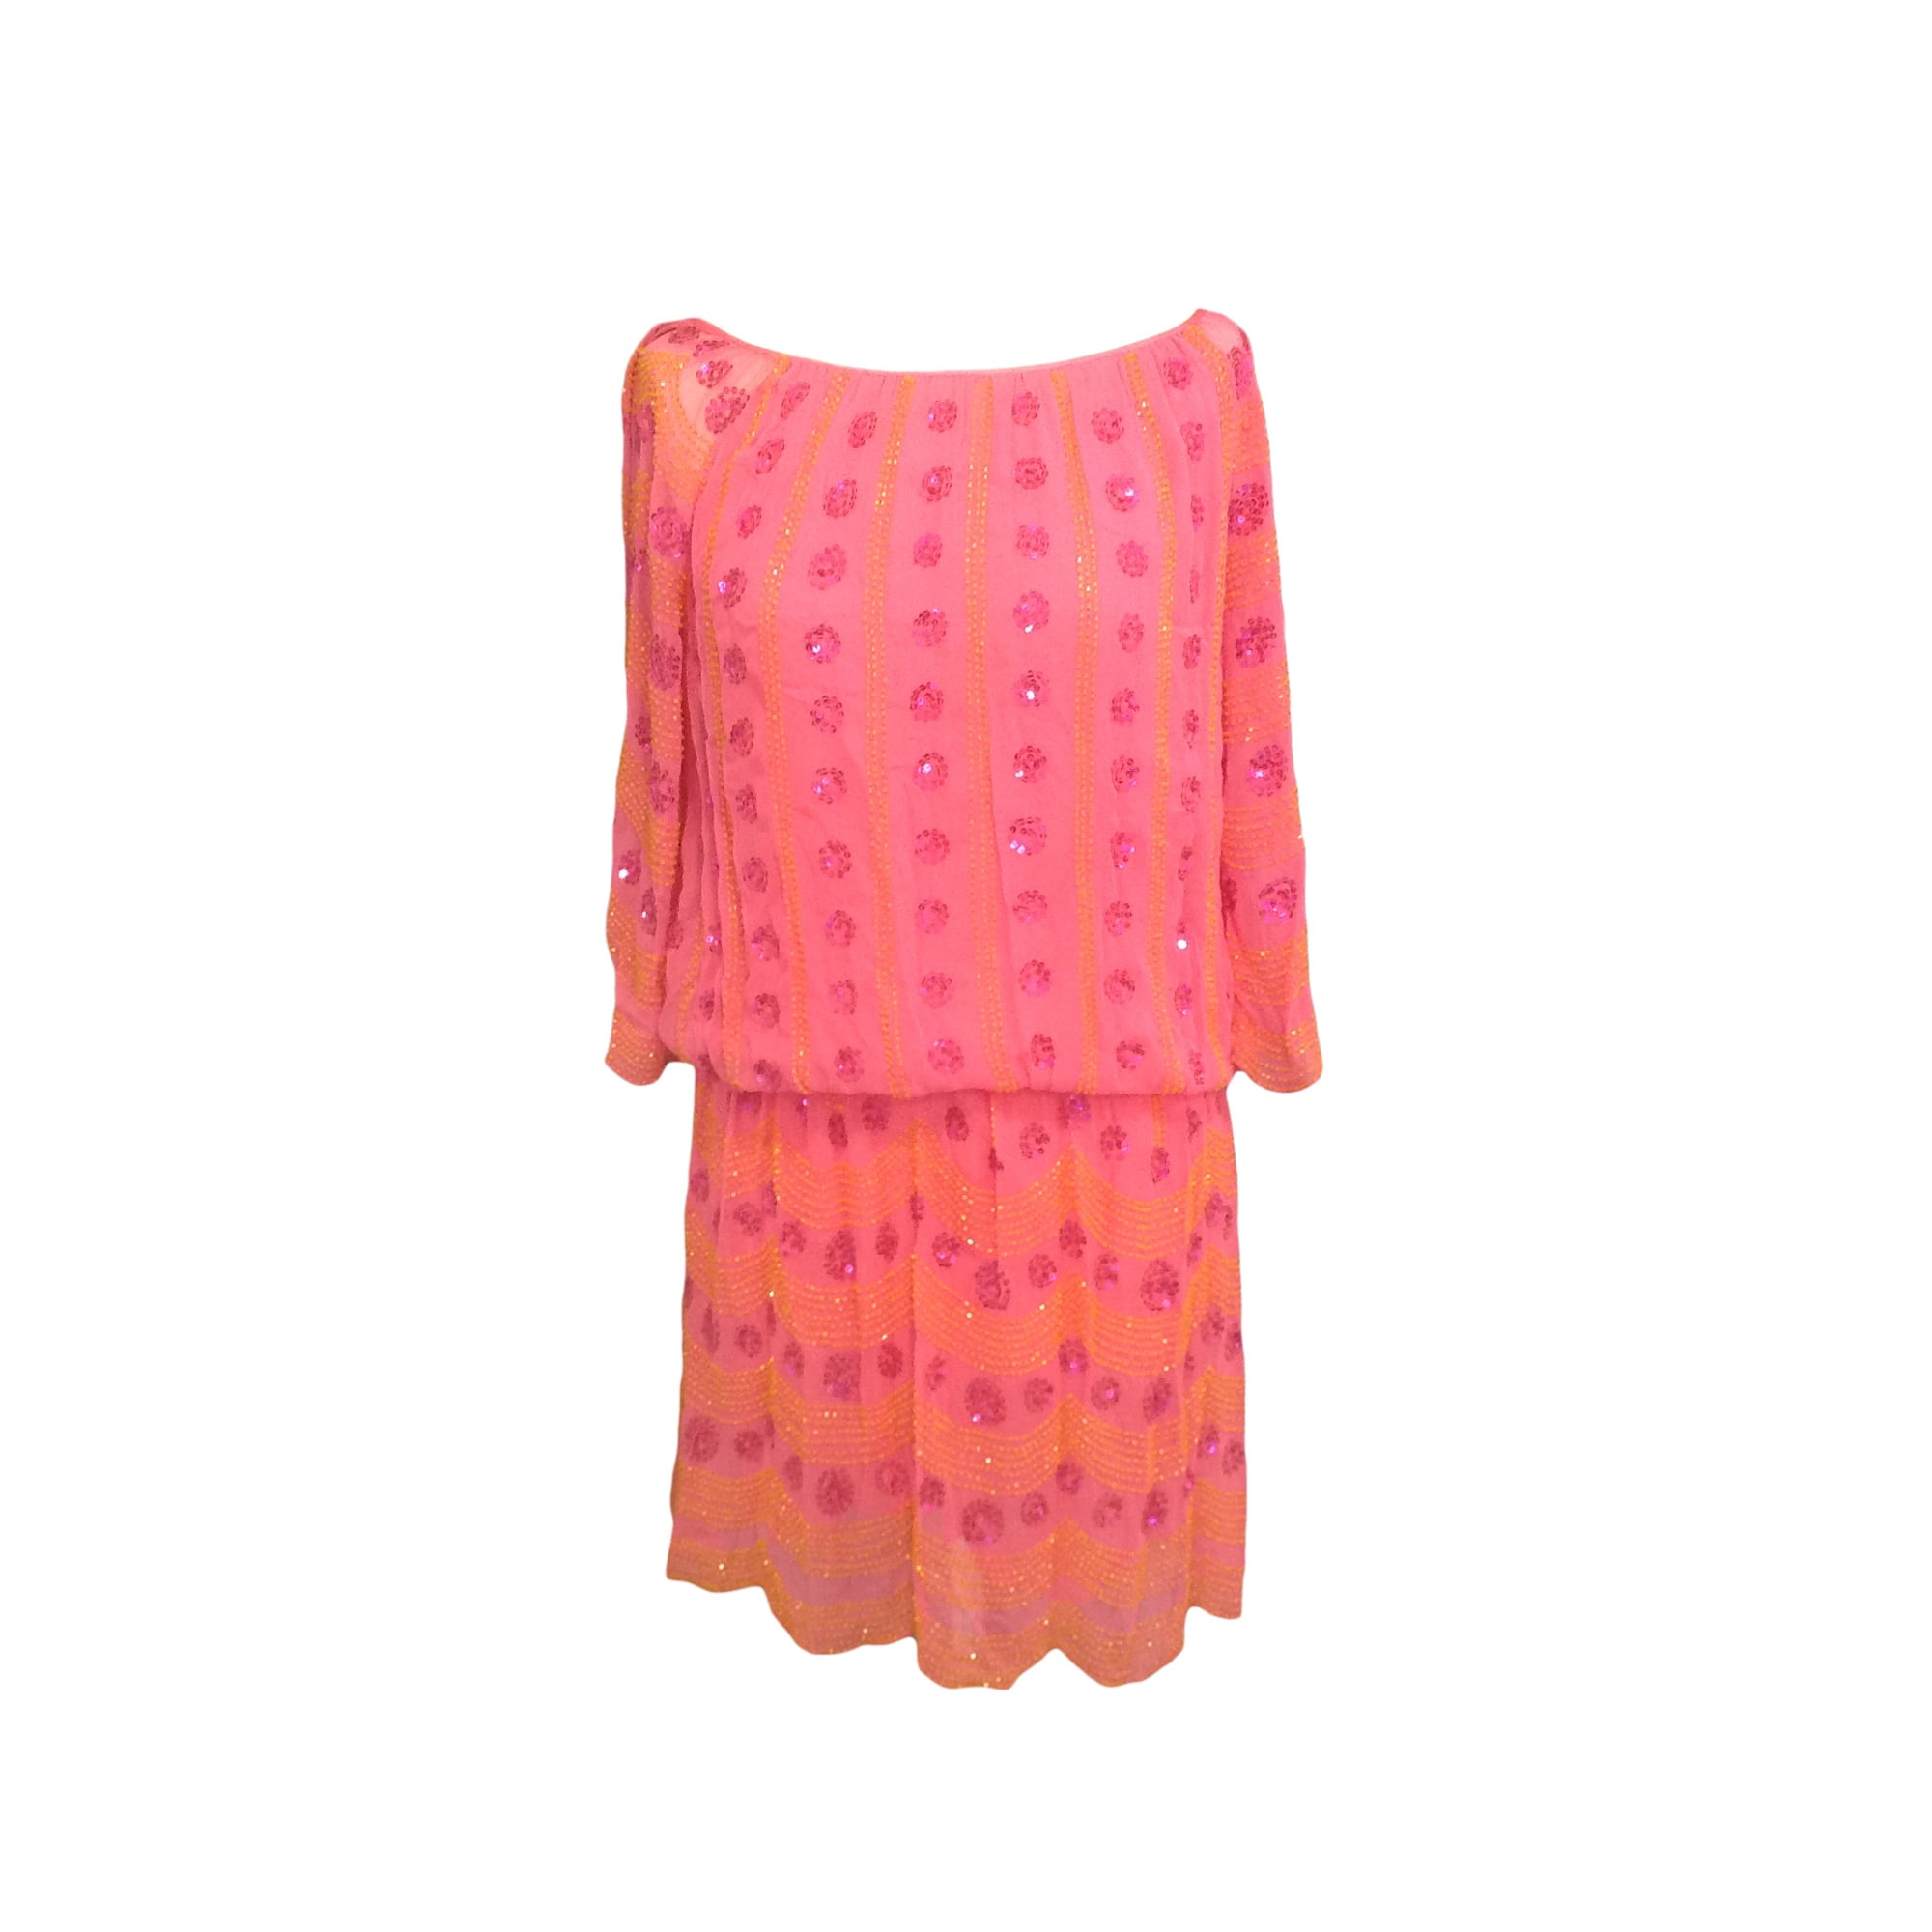 Mini Dress ANTIK BATIK Pink, fuchsia, light pink